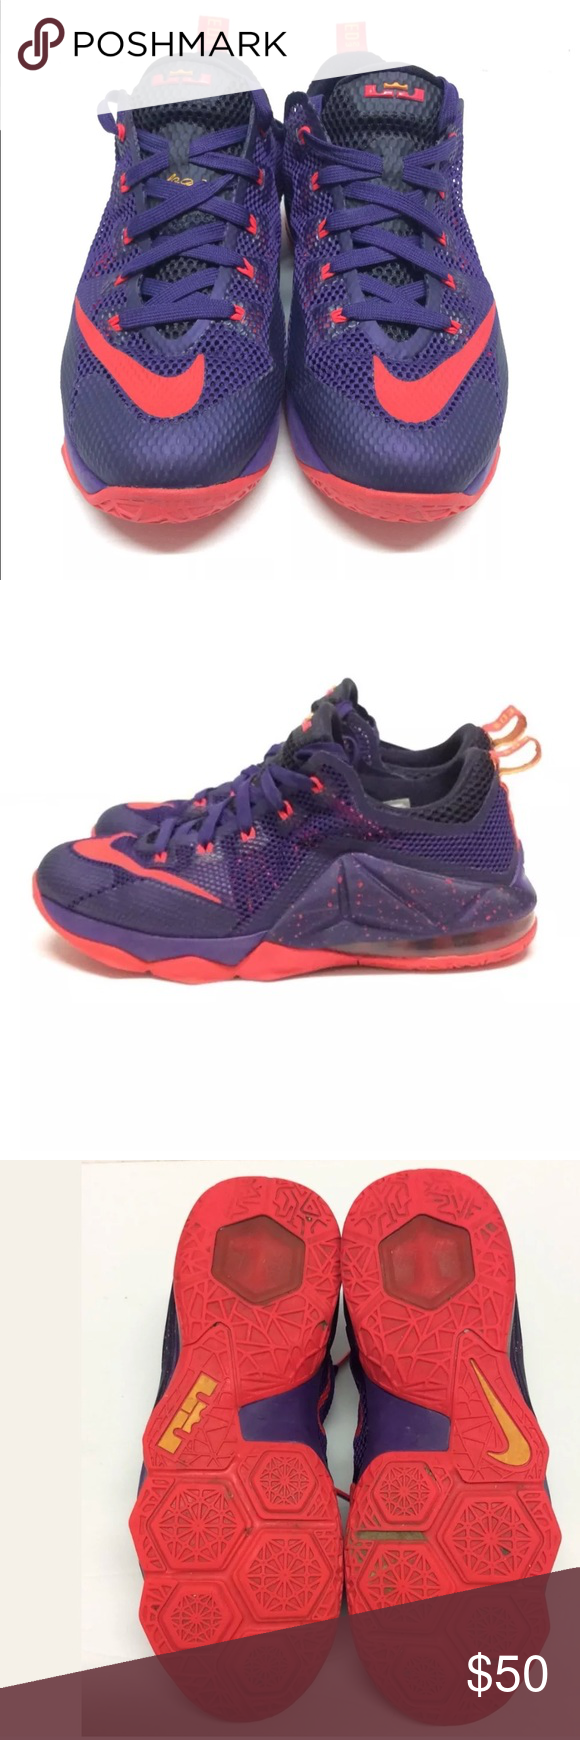 best website 153c5 5d109 🔥Nike Air Max Lebron 12 Sz 6.5 Youth Purple Red Nike Air ...